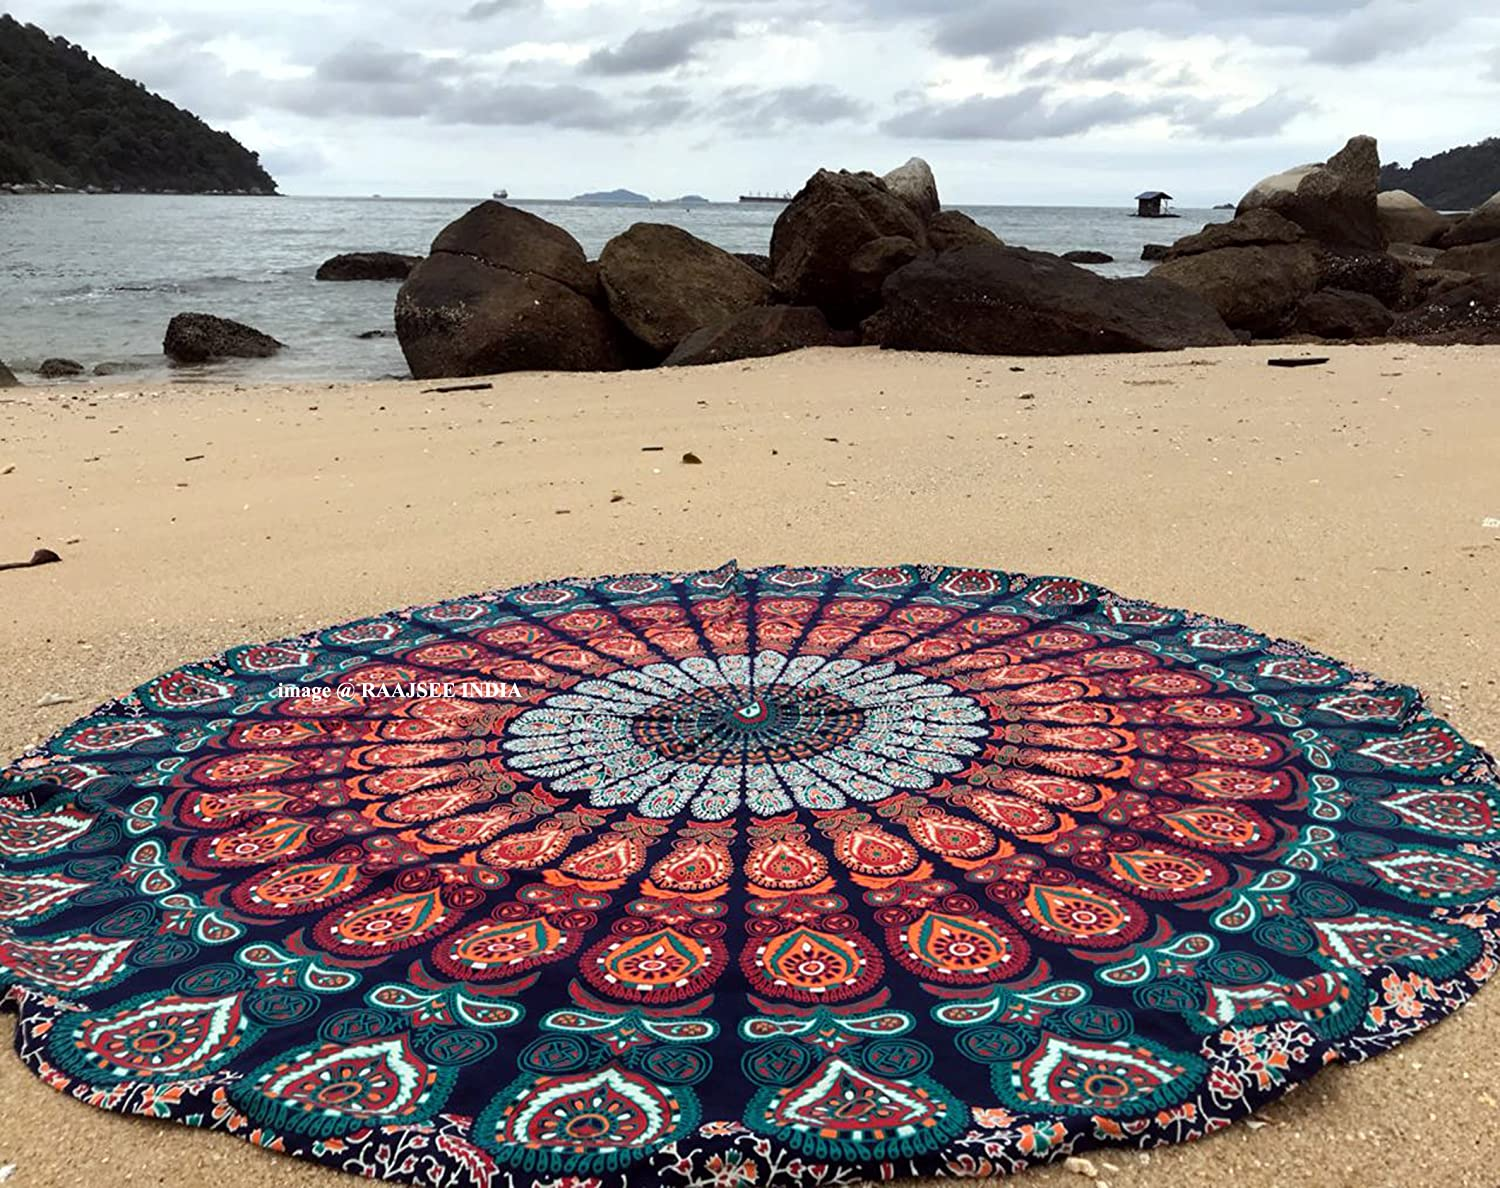 raajsee Round Beach Tapestry Blue Orange Mandala Throw/Boho Hippie Beach Blanket Roundie Circle/Indian Cotton Bohemian Large Round Table Cloth/Yoga Mat Meditation Picnic Rug 70 inch/A